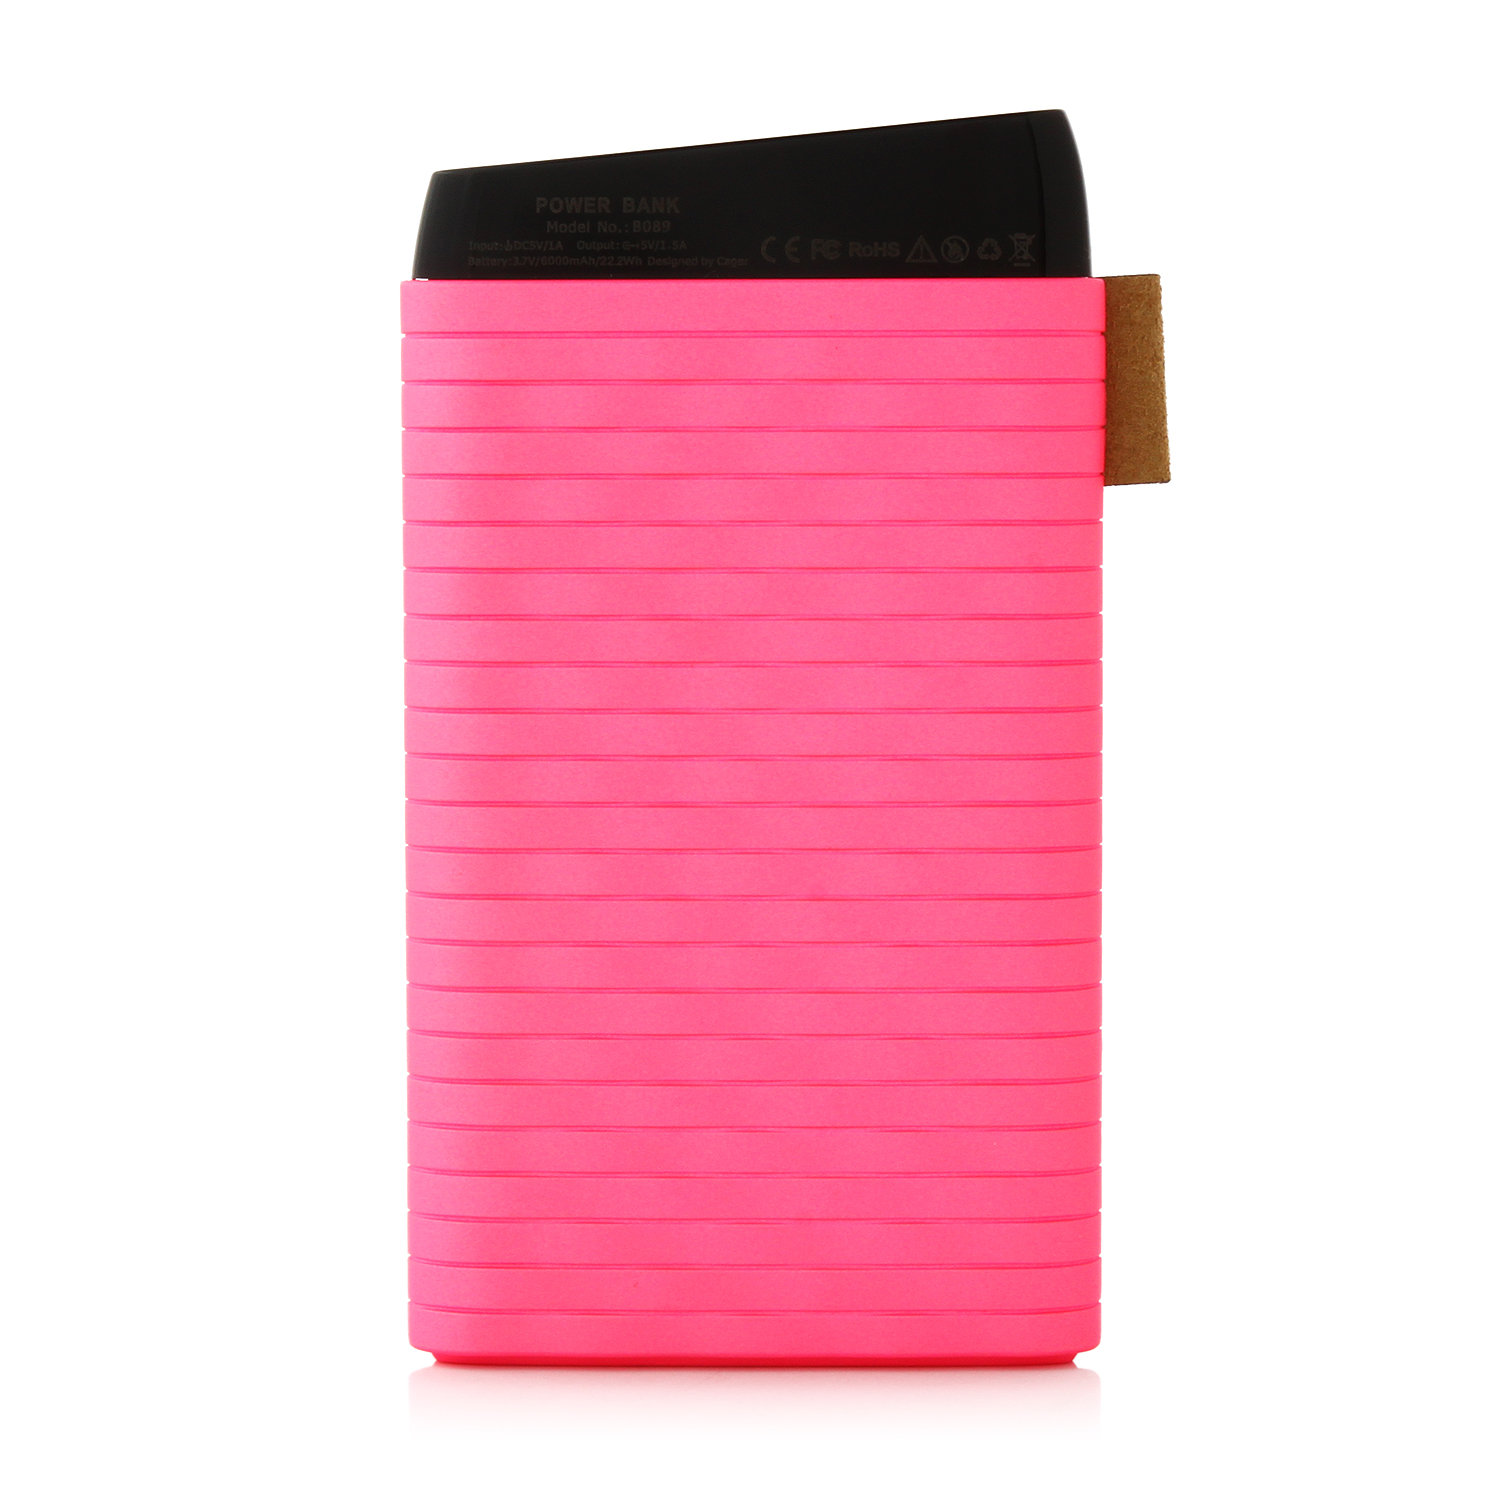 Cager B089 6000mAh Ultra Slim USB Power Bank for Smartphones Tablet PC Pink